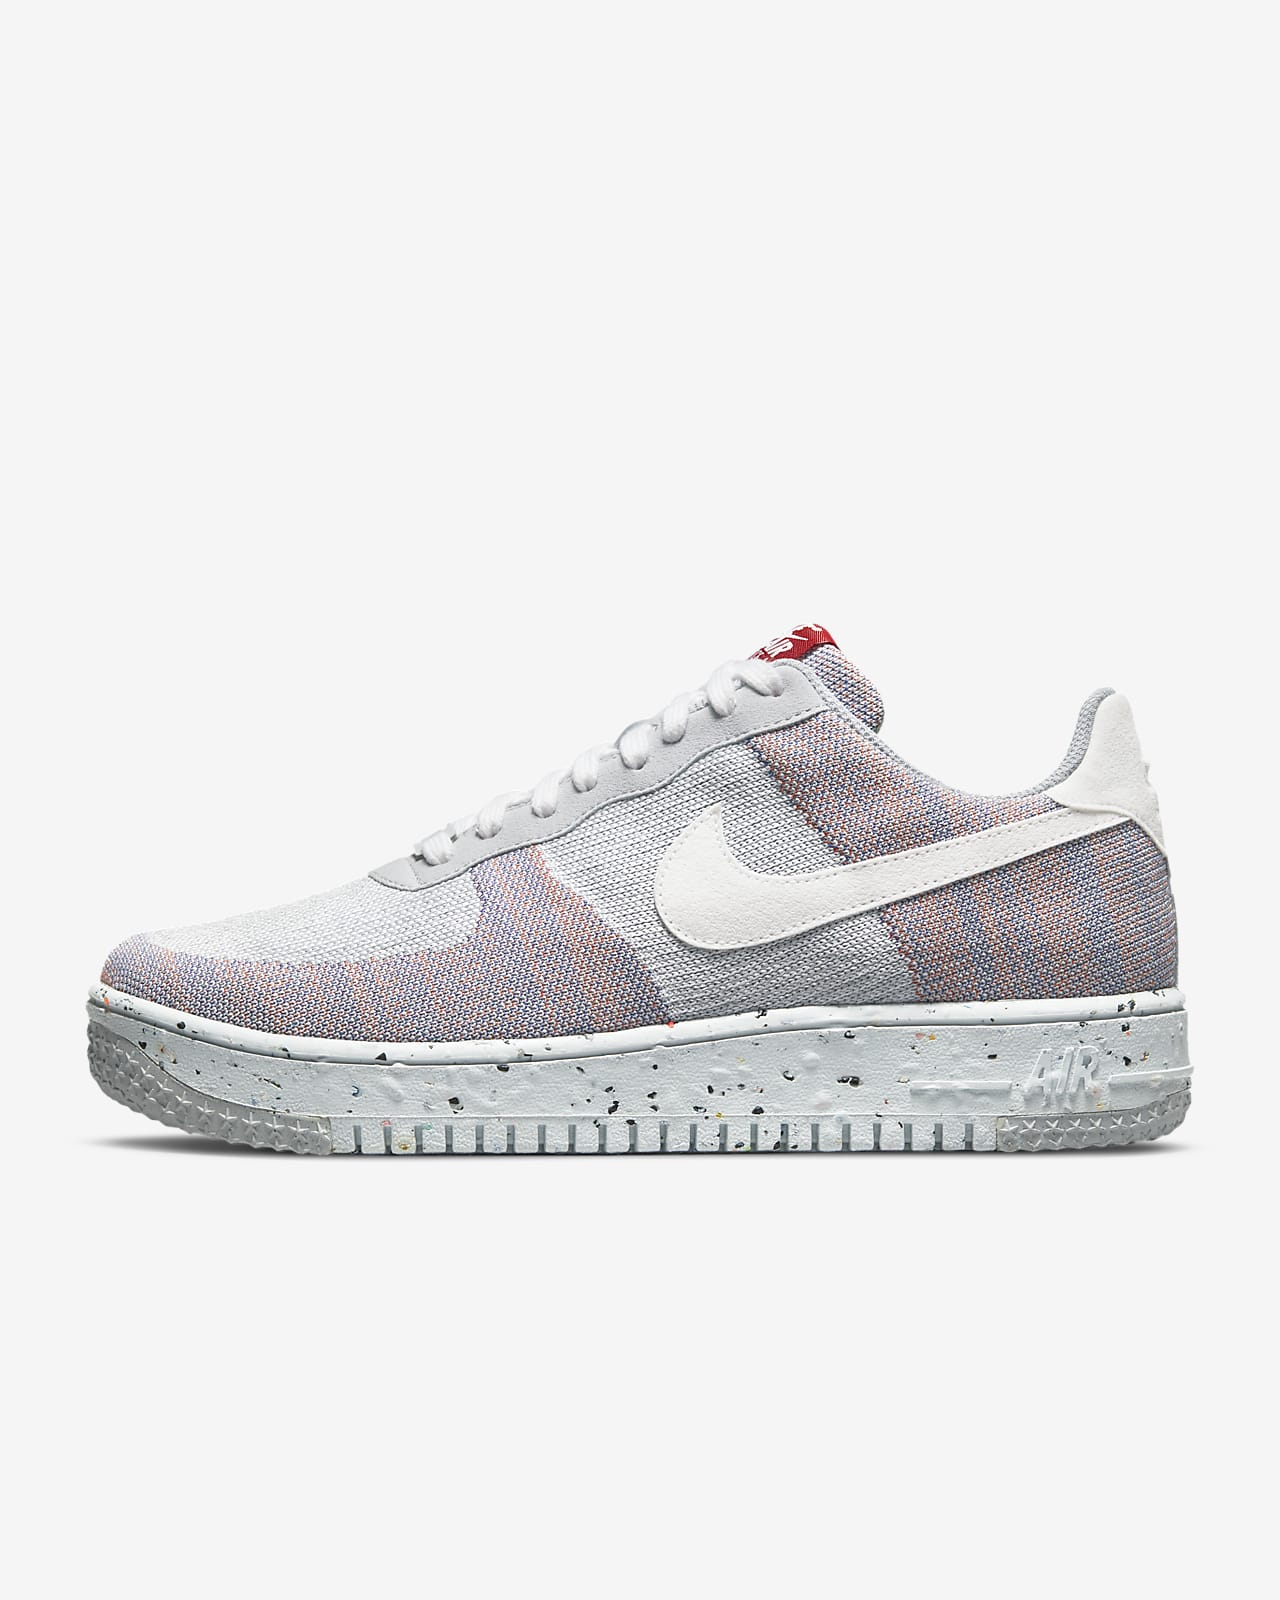 Chaussure Nike Air Force 1 Crater Flyknit pour Homme